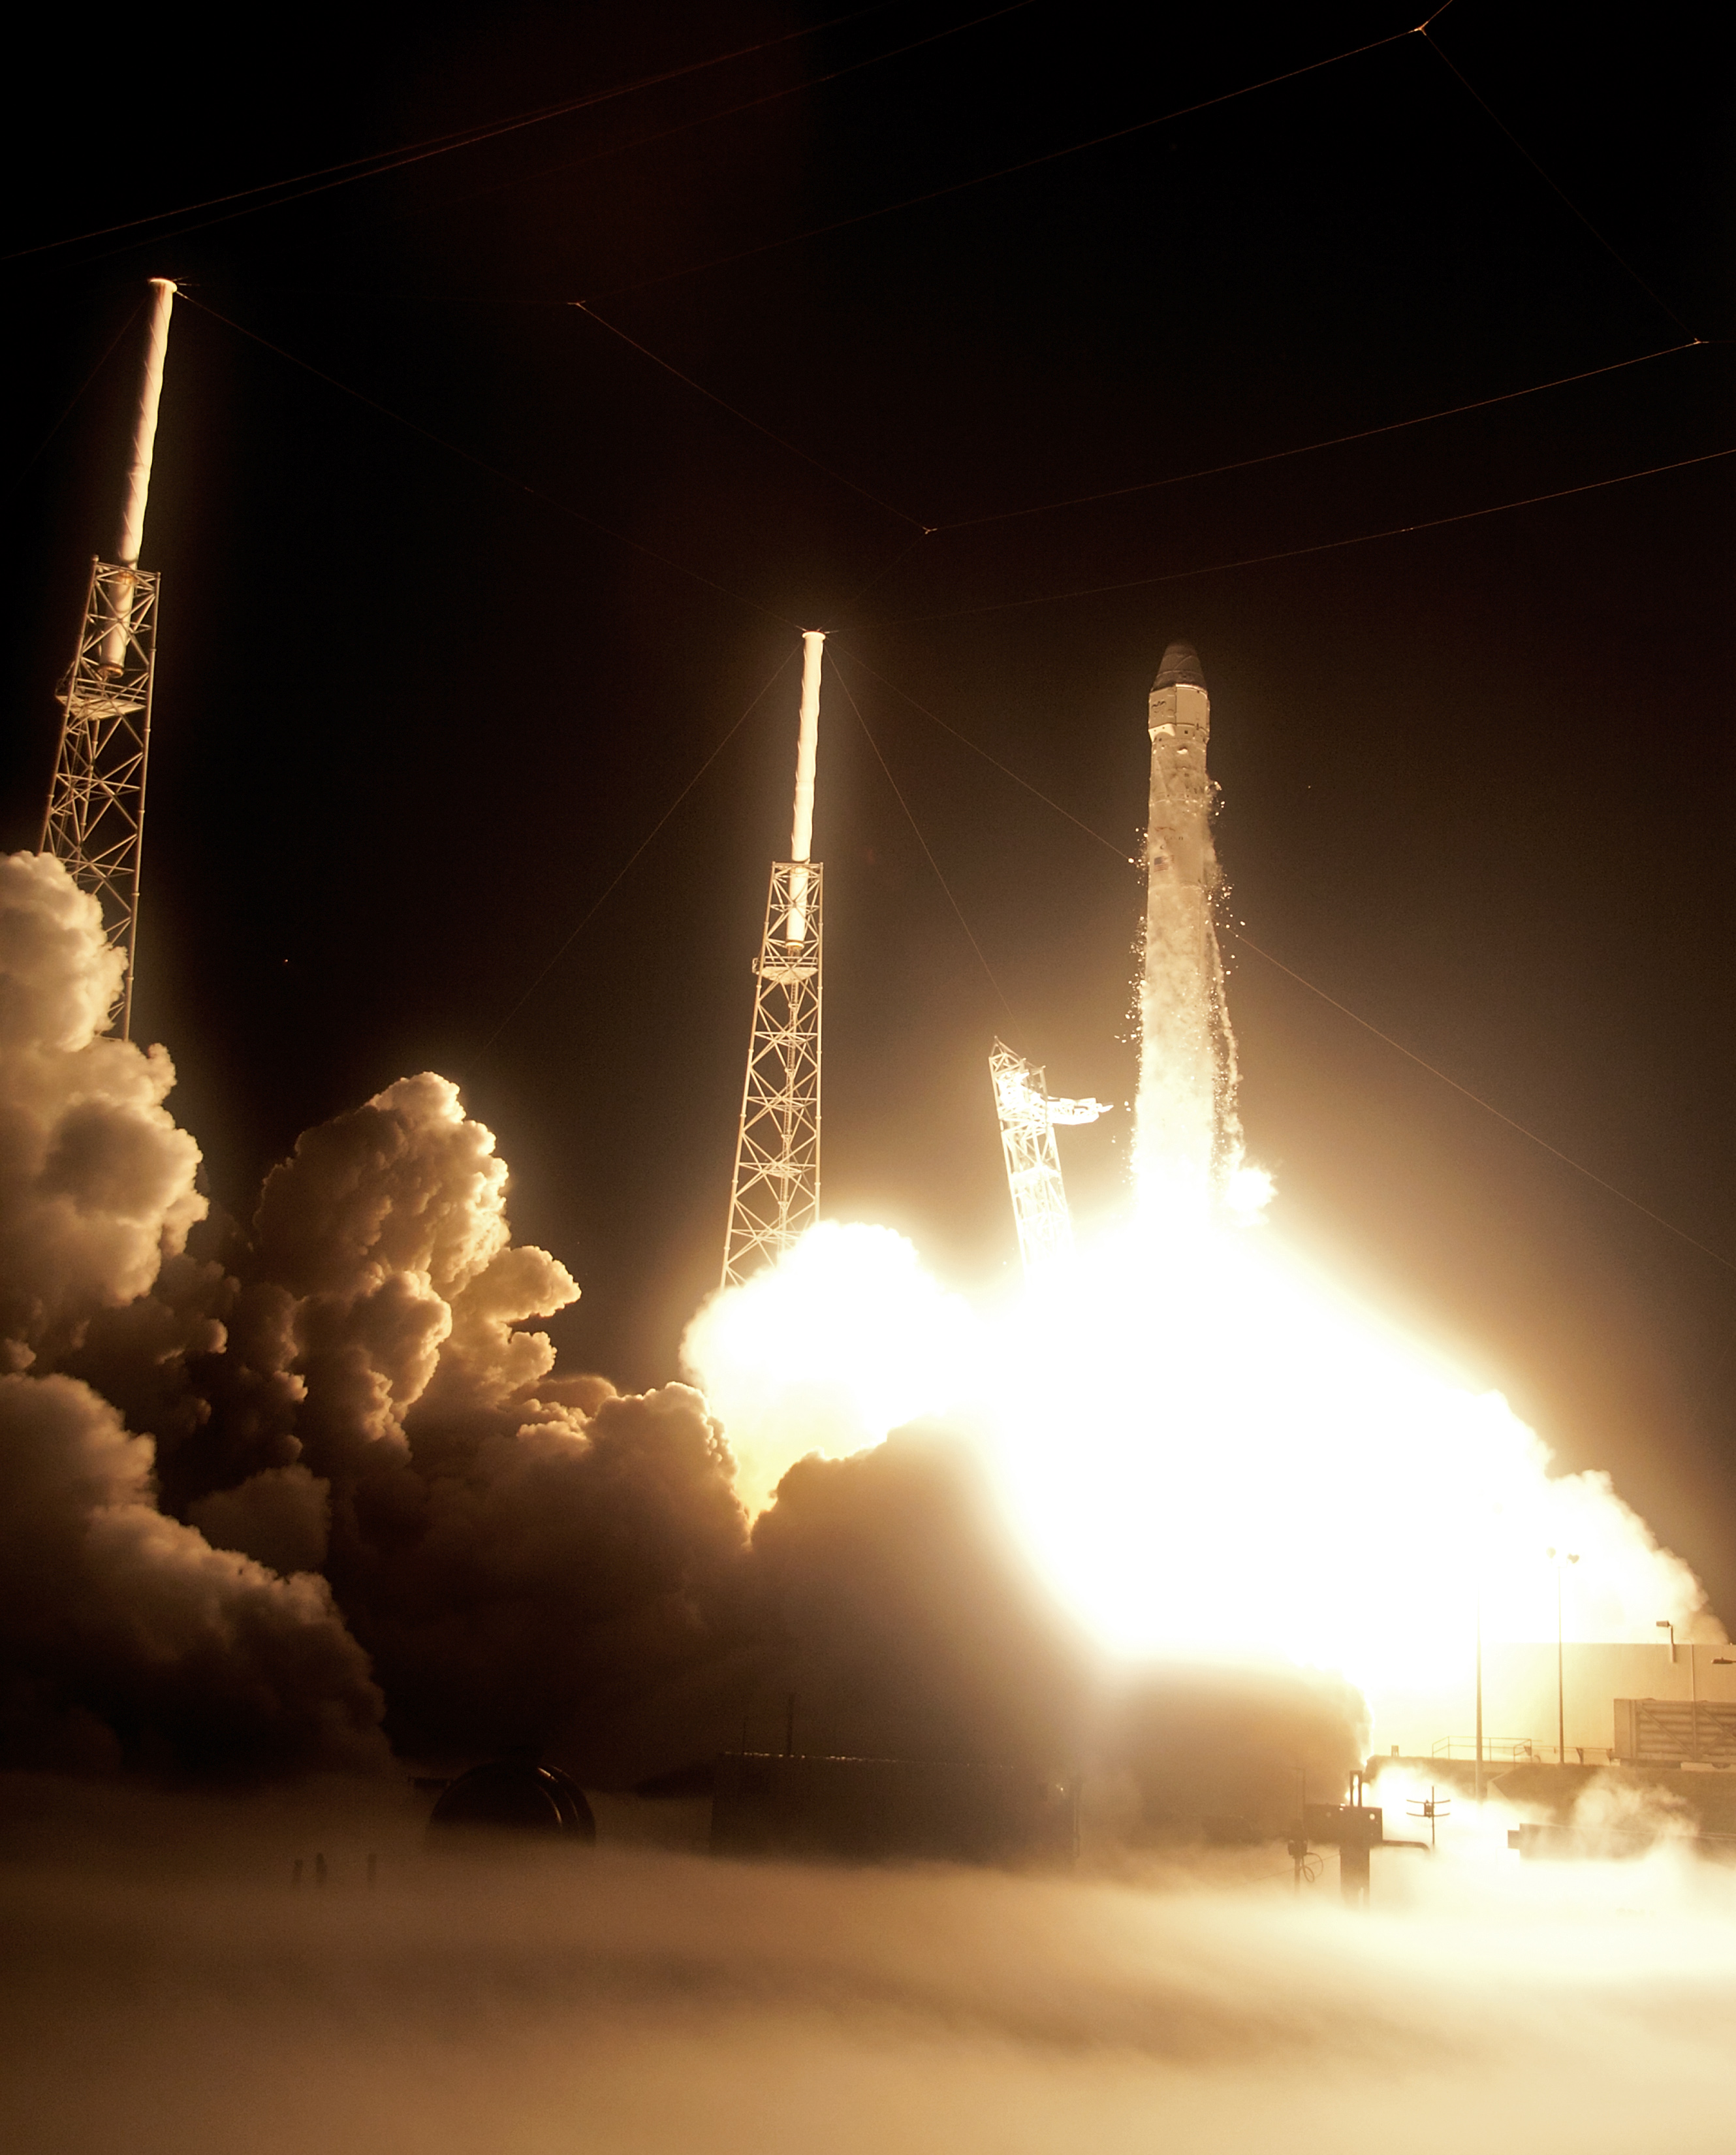 SpaceX rocket successfully launches - Photo 1 - Pictures ...